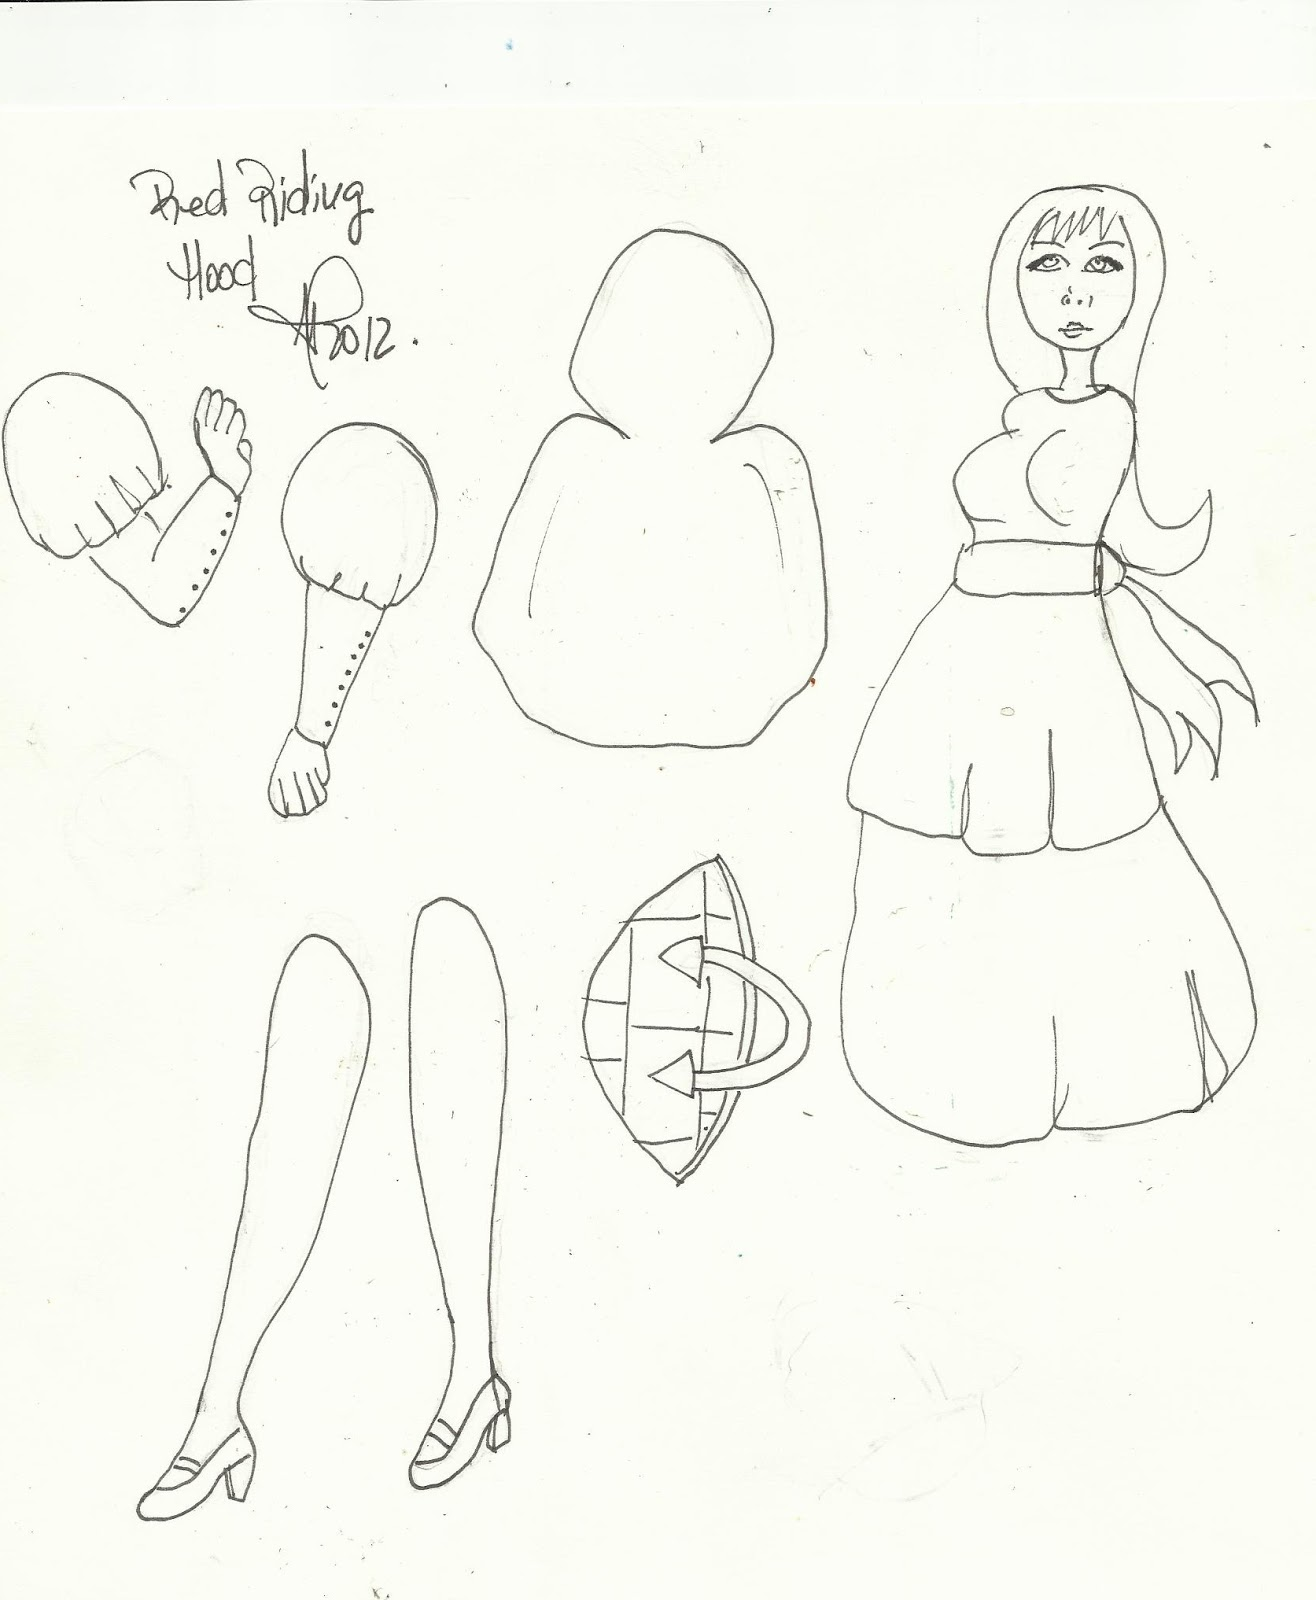 Free Paper Dolls Templates | ART DOLLS PAPER & OTHER ARTSY ONES